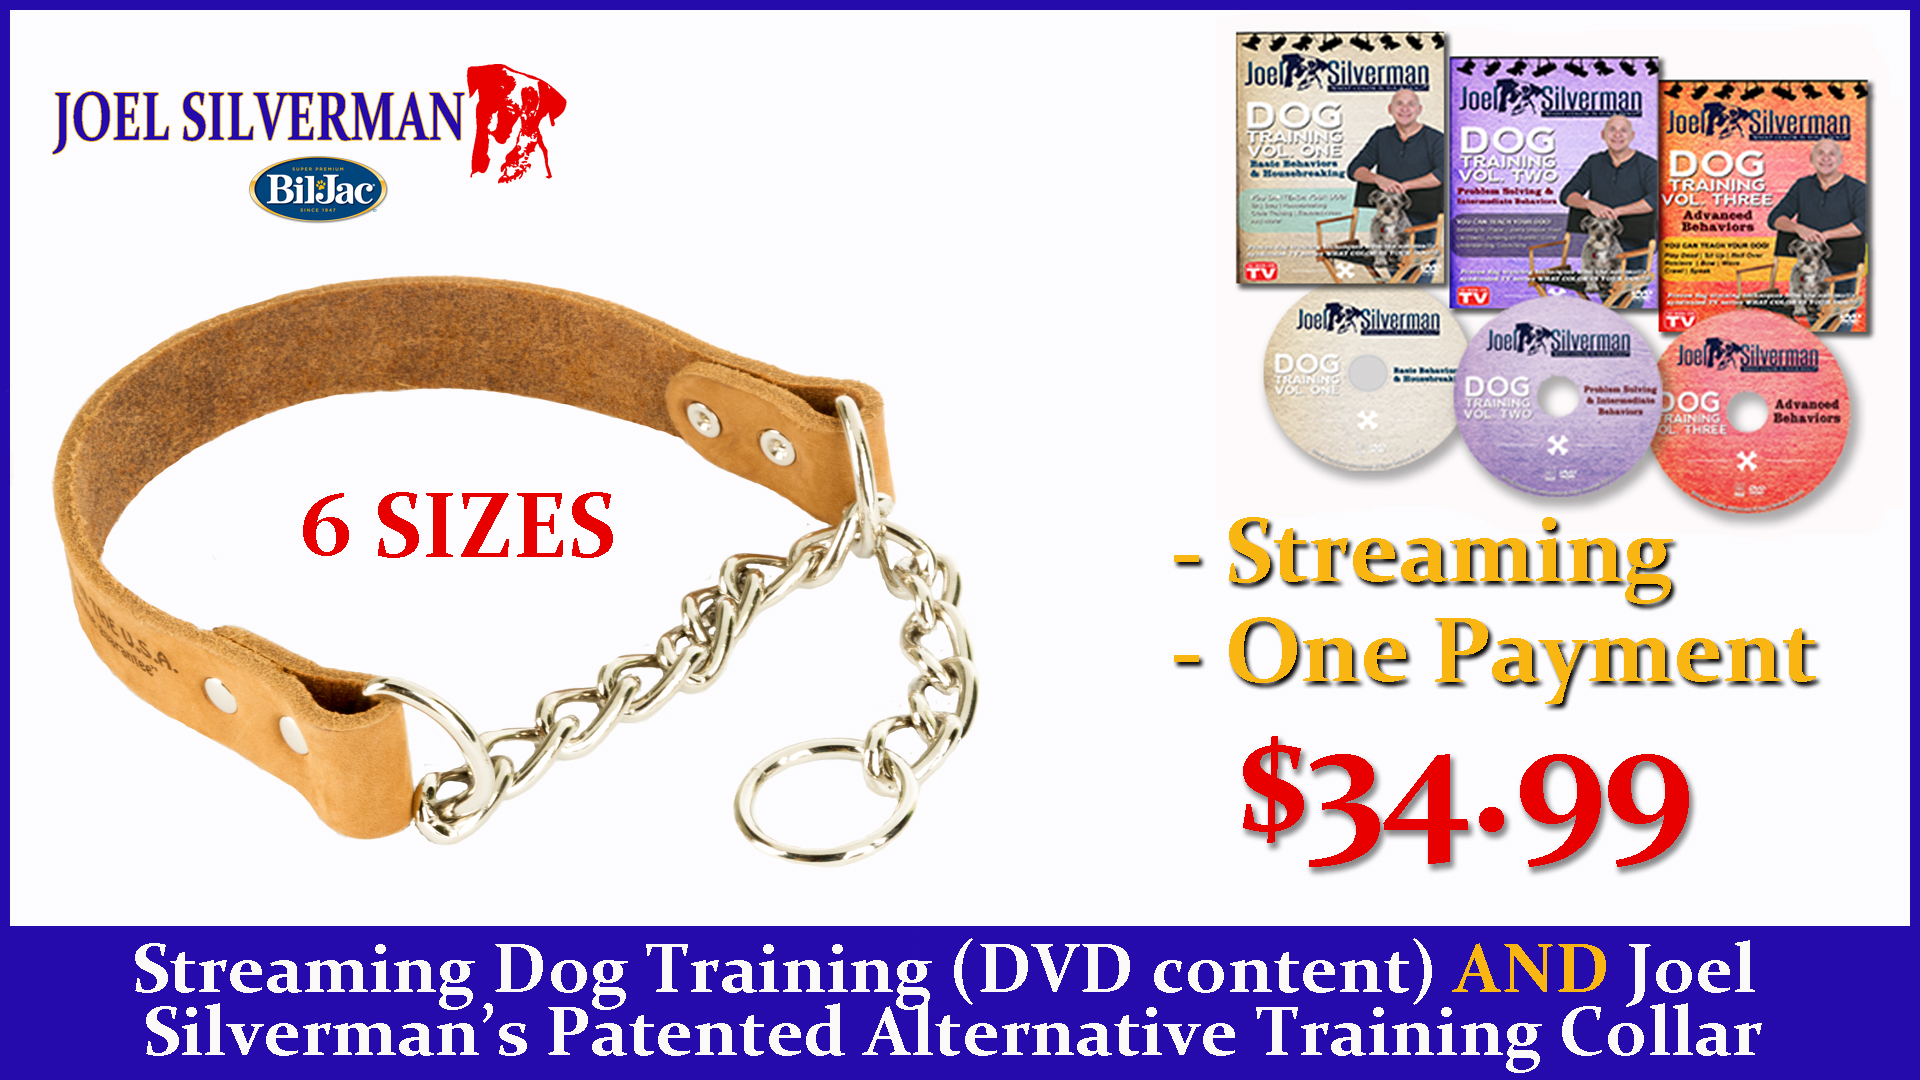 Joel Silvermans Streaming Dog Training